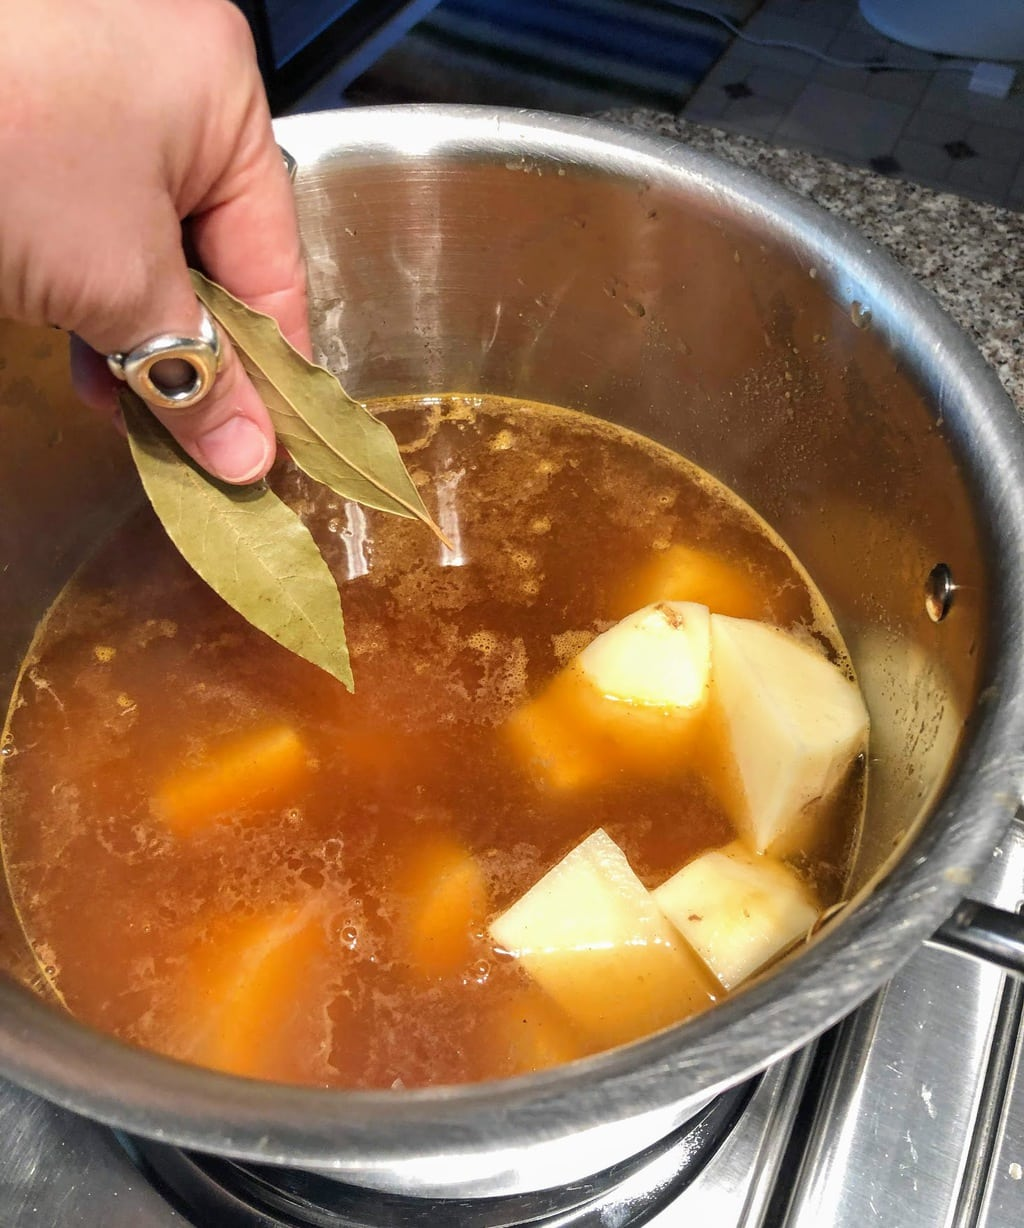 Adding spices to boiling broth for potato leek soup